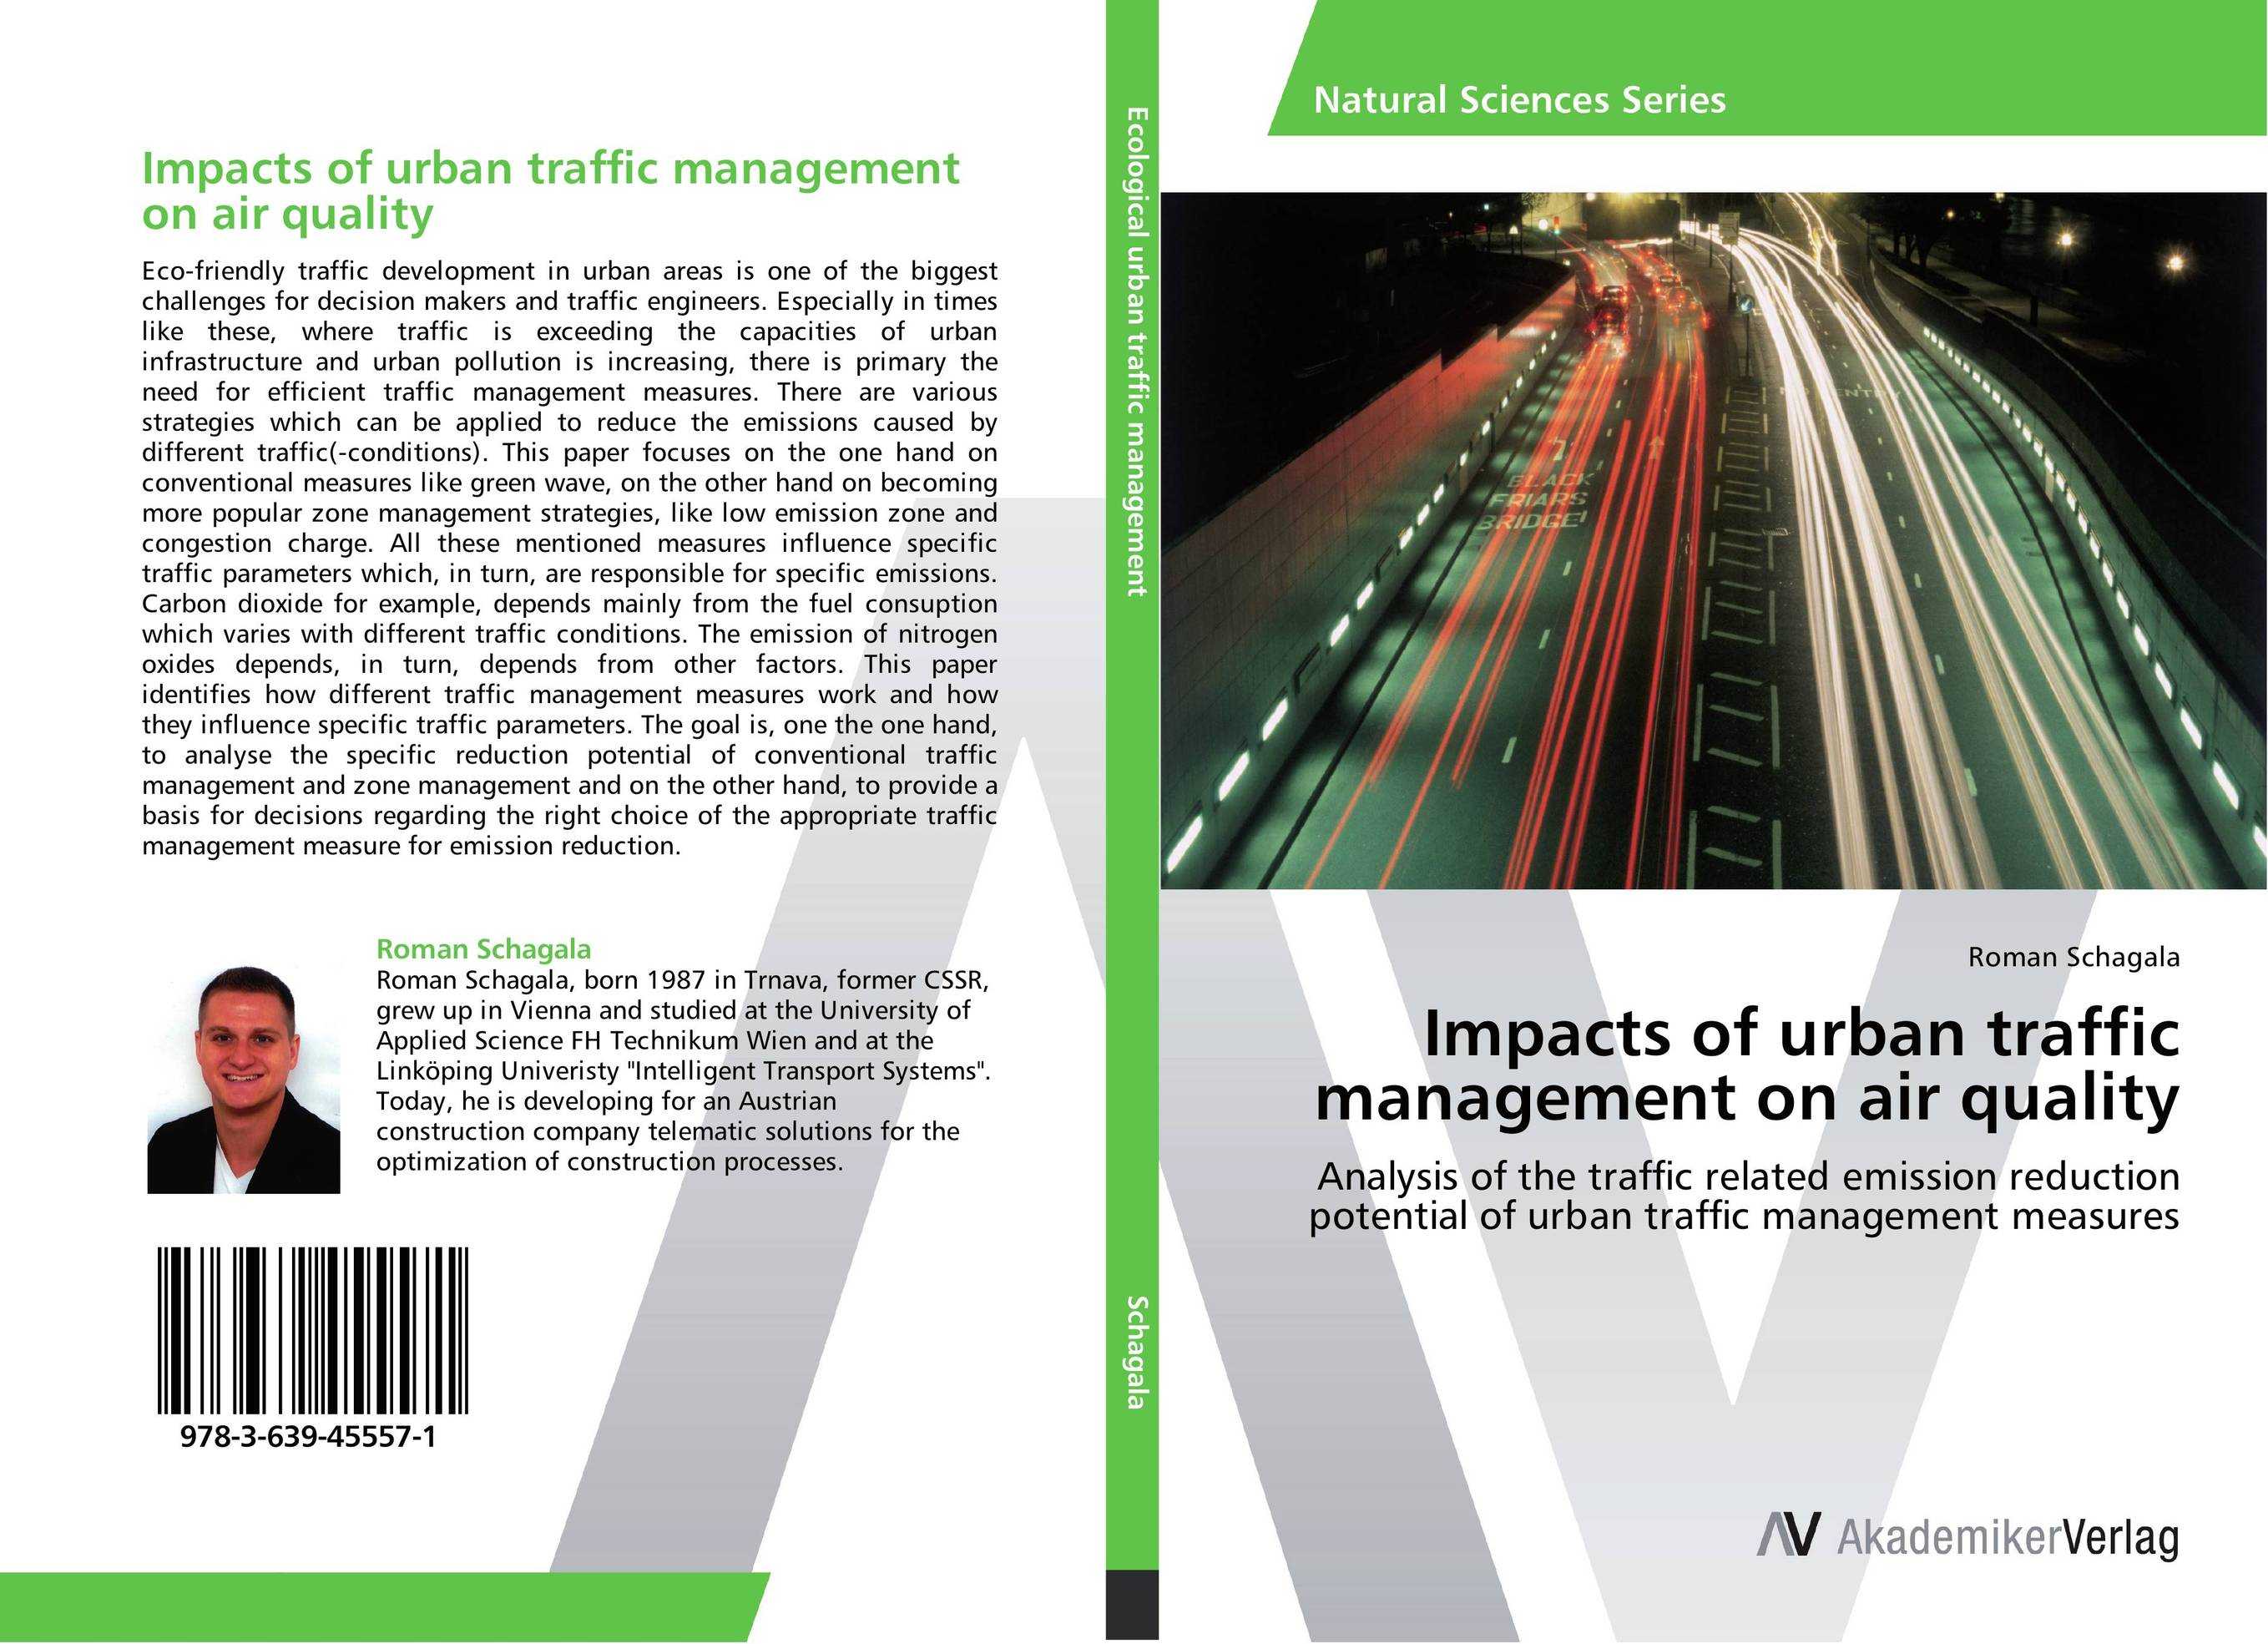 Impacts of urban traffic management on air quality gross 20801